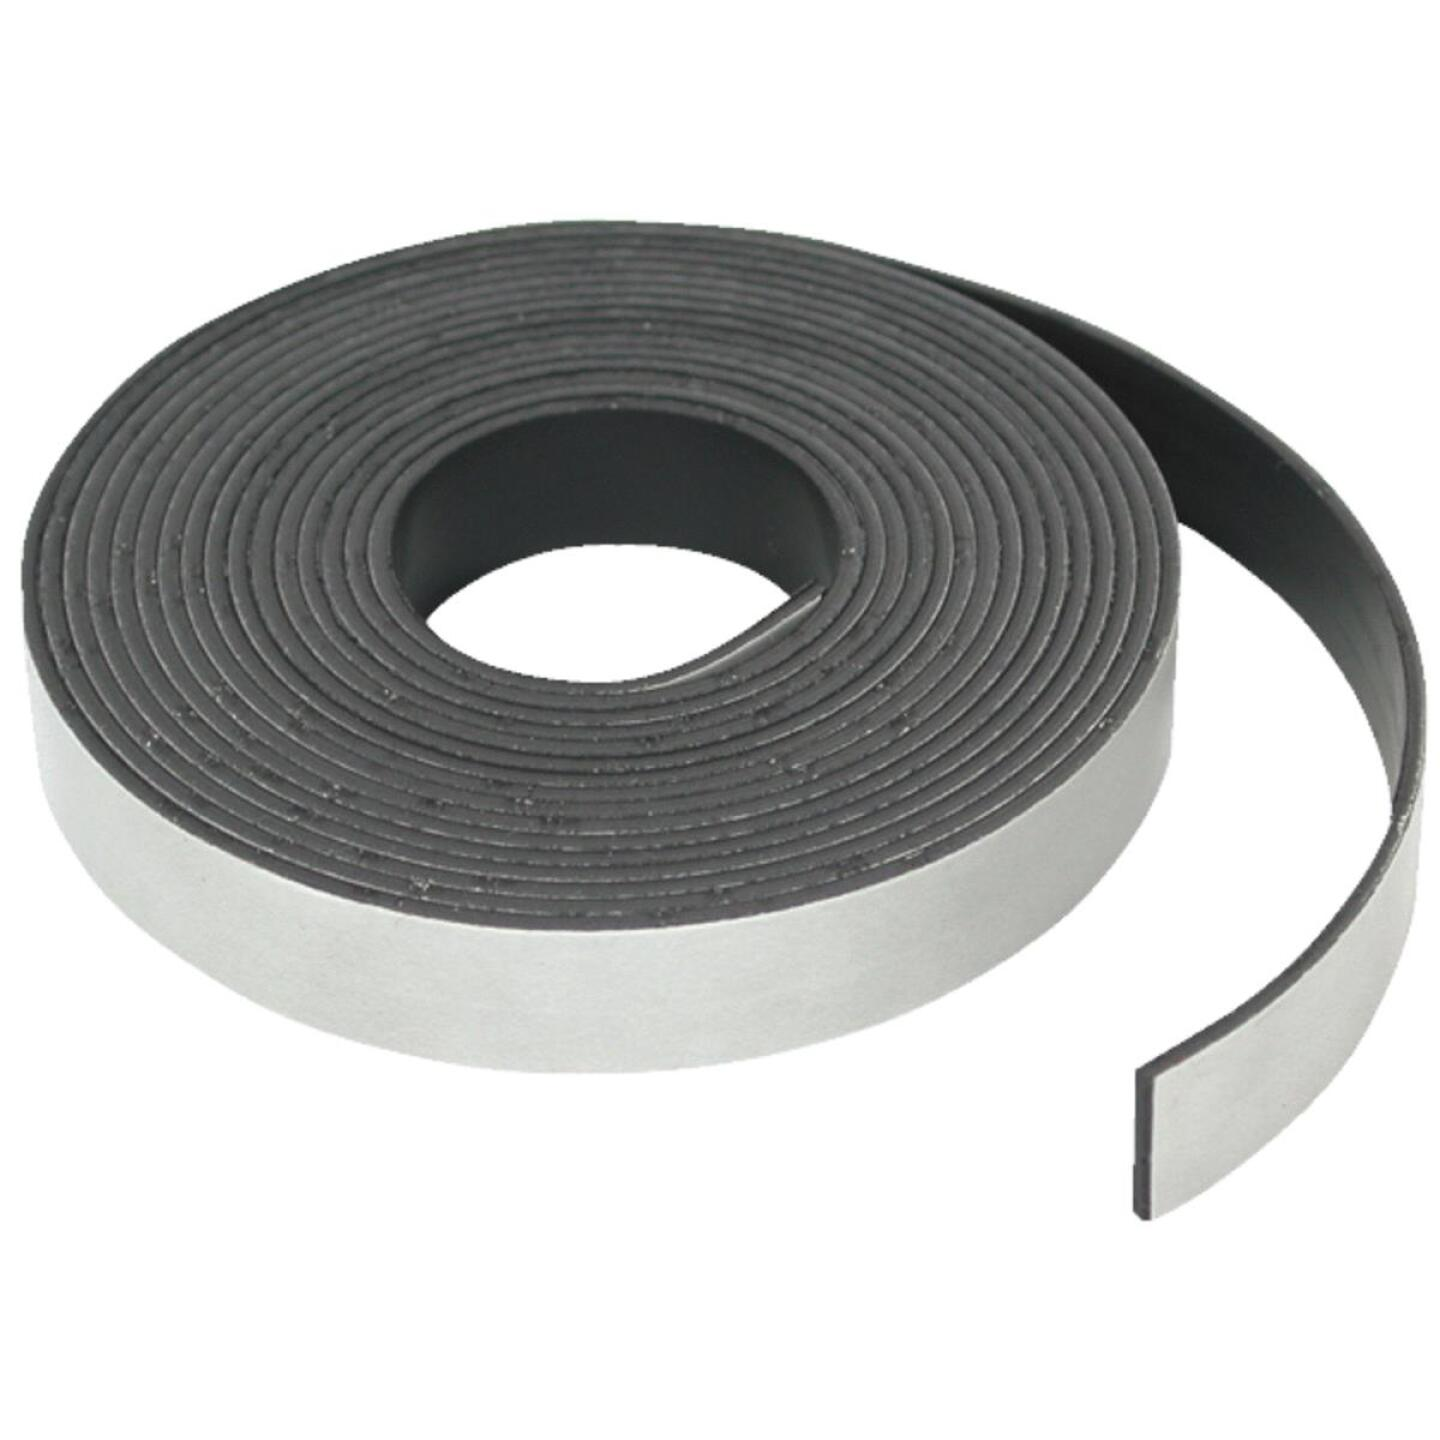 Master Magnetics 10 Ft. x 1/2 in. Magnetic Tape Image 2